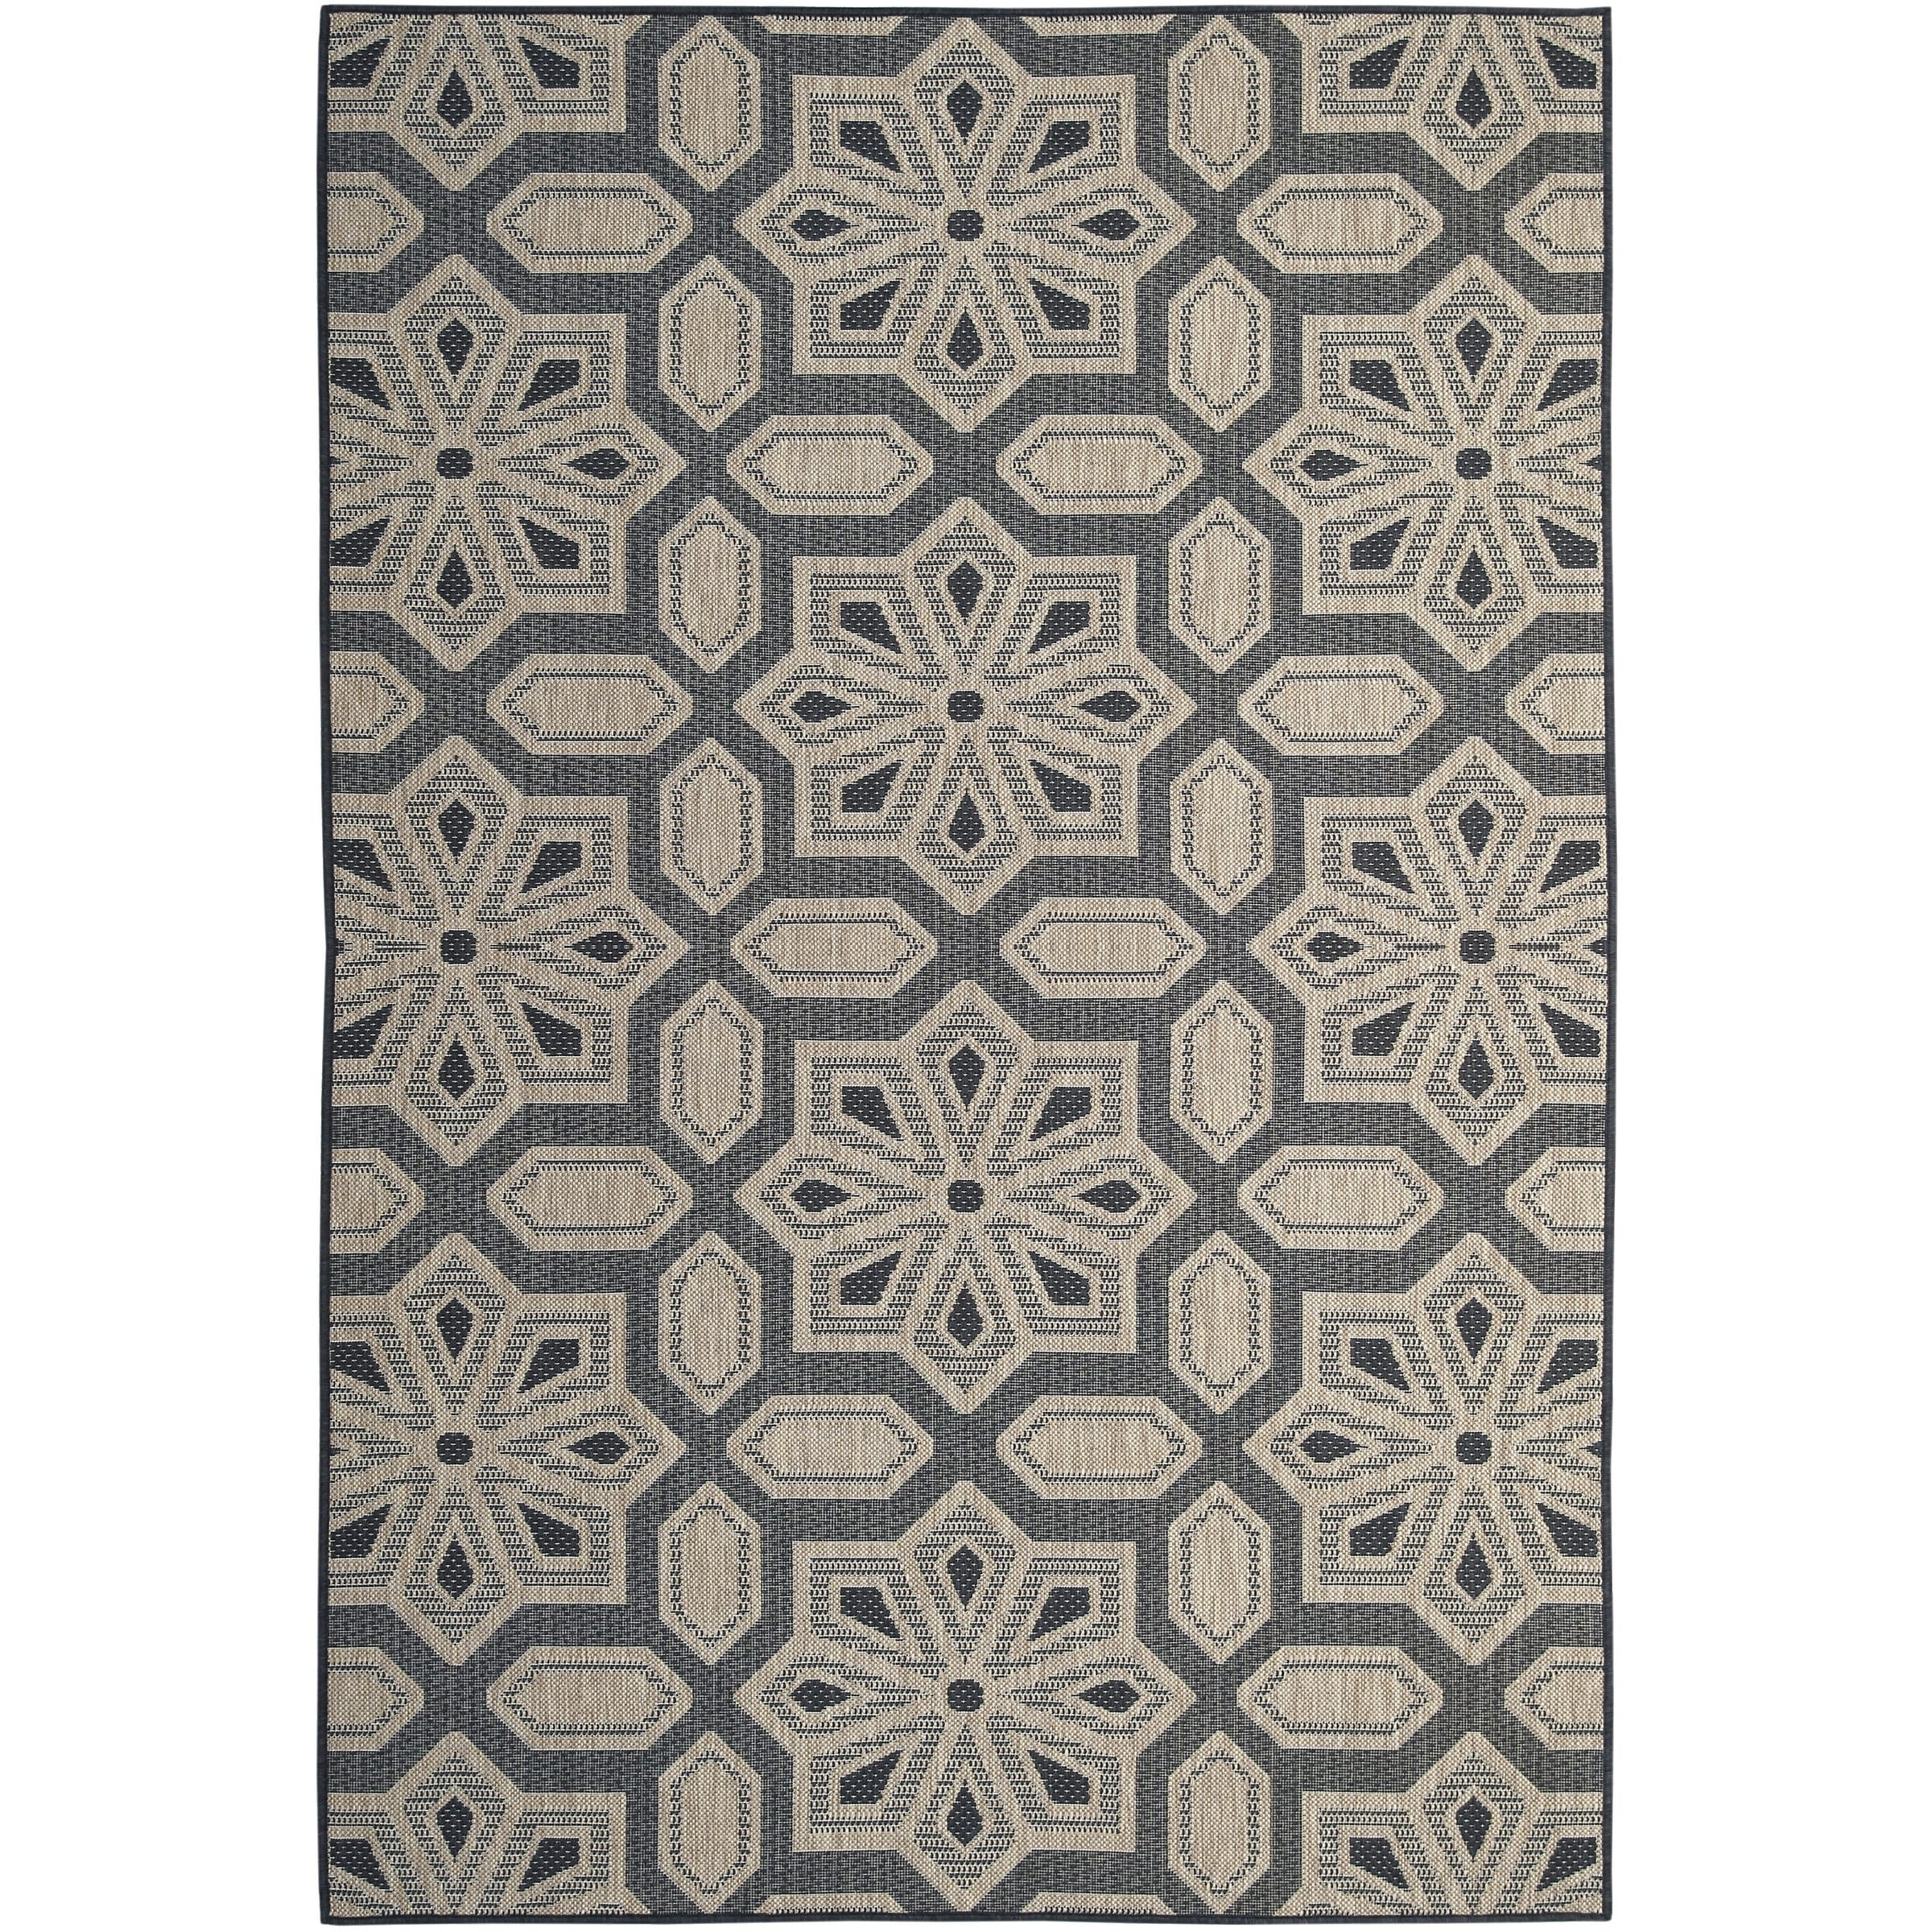 Tori Home Charcoal 5 X8 Indoor Outdoor Rug 5 X 8